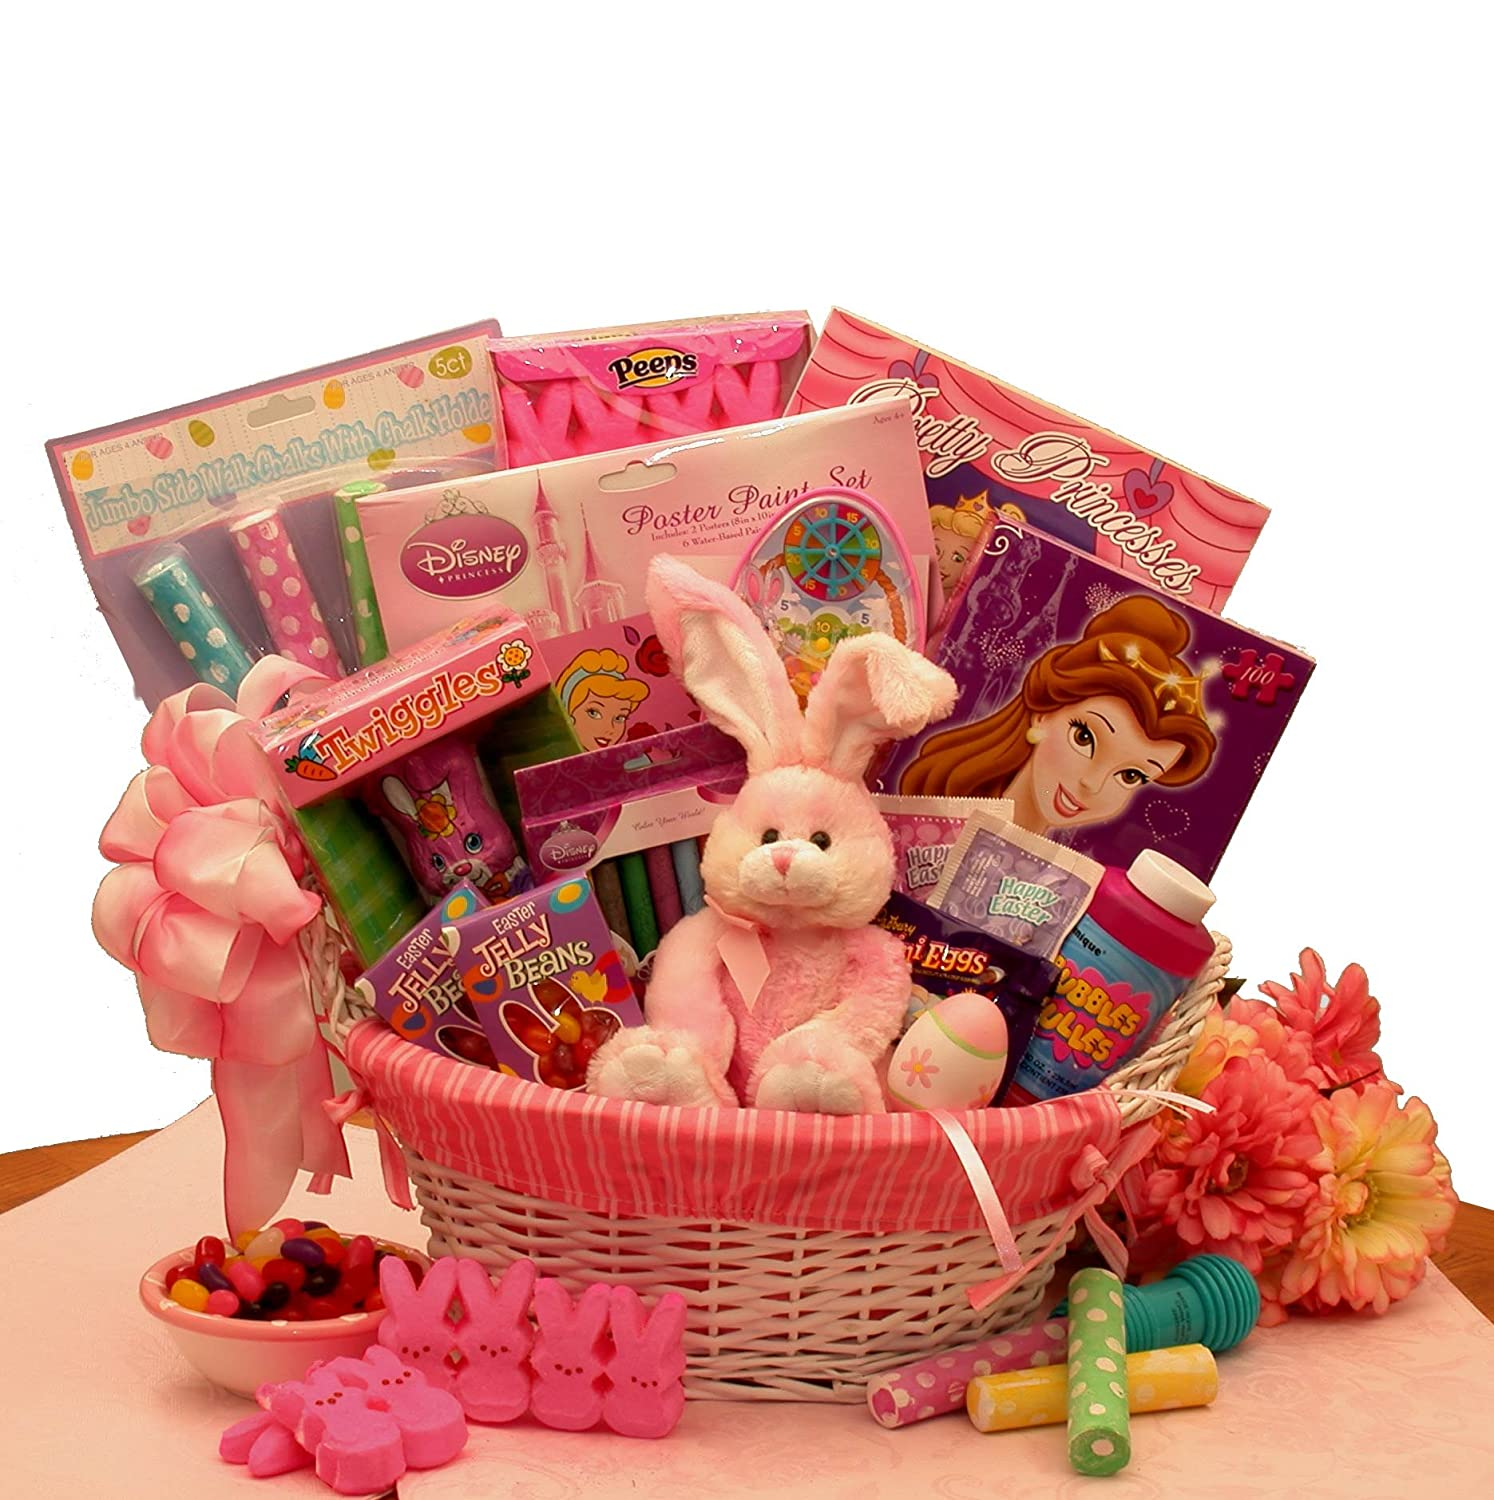 My Little Princess Disney Easter Gift Basket Just For Girls with Easter Chocolates and Easter Activities